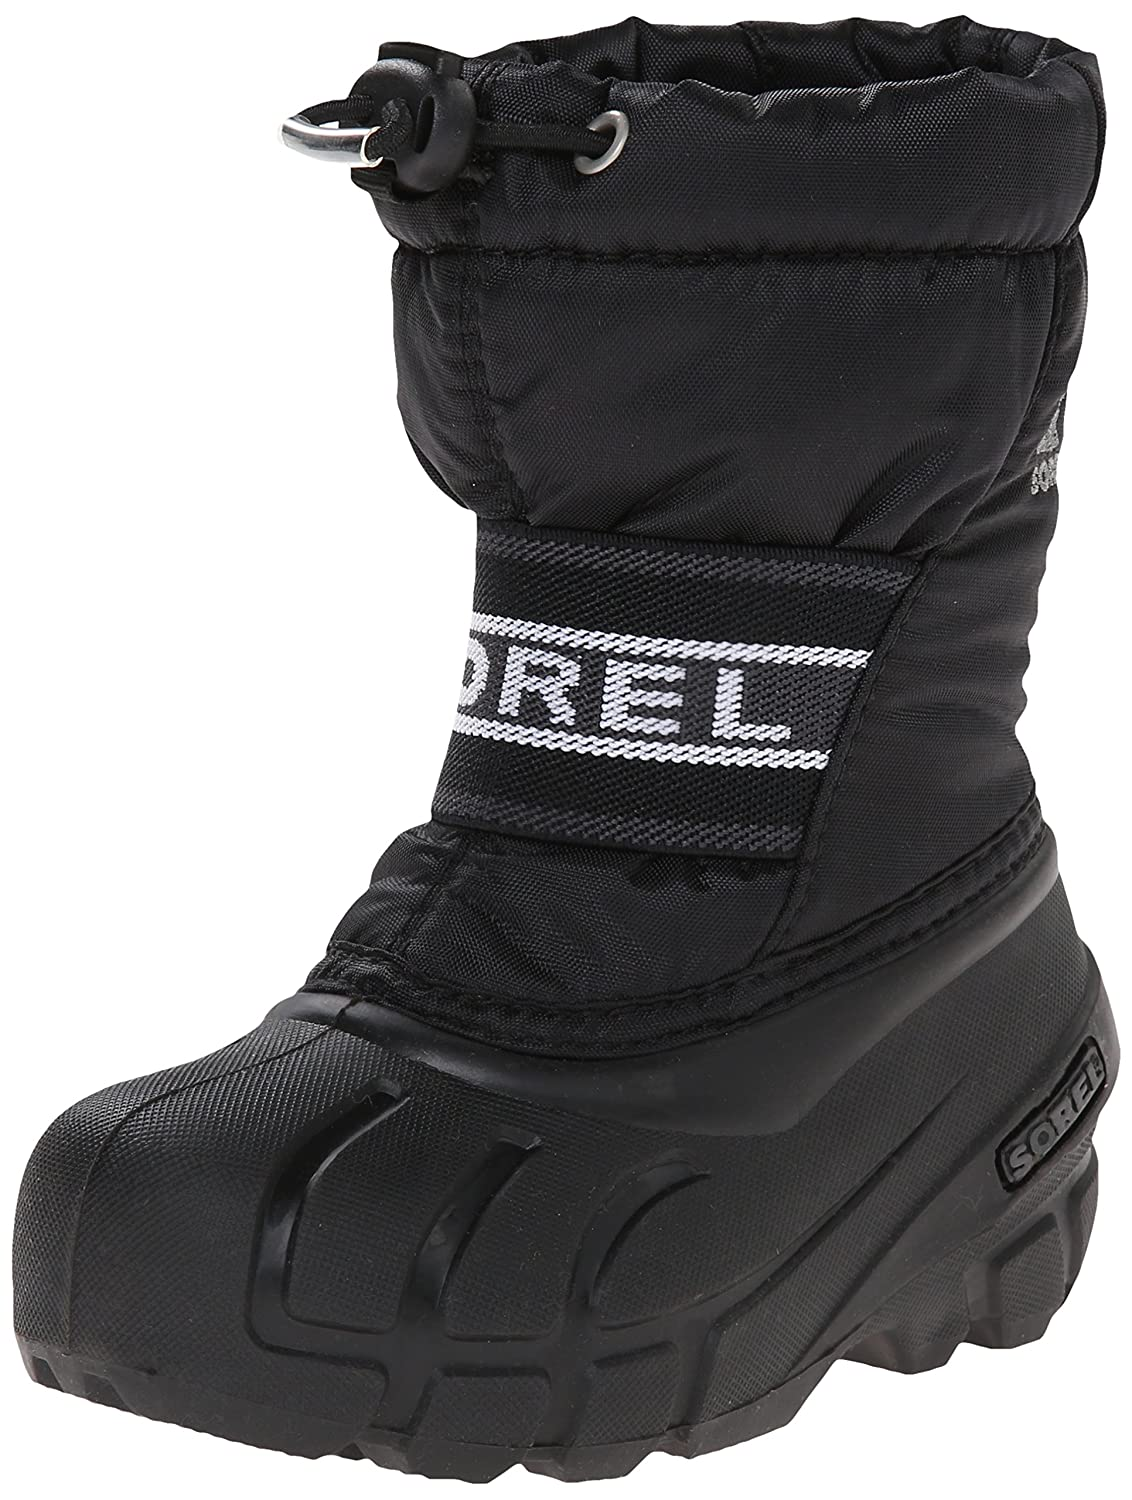 67f801ae8f46 Amazon.com | Sorel Cub Winter Boot (Toddler/Little Kid) | Snow Boots